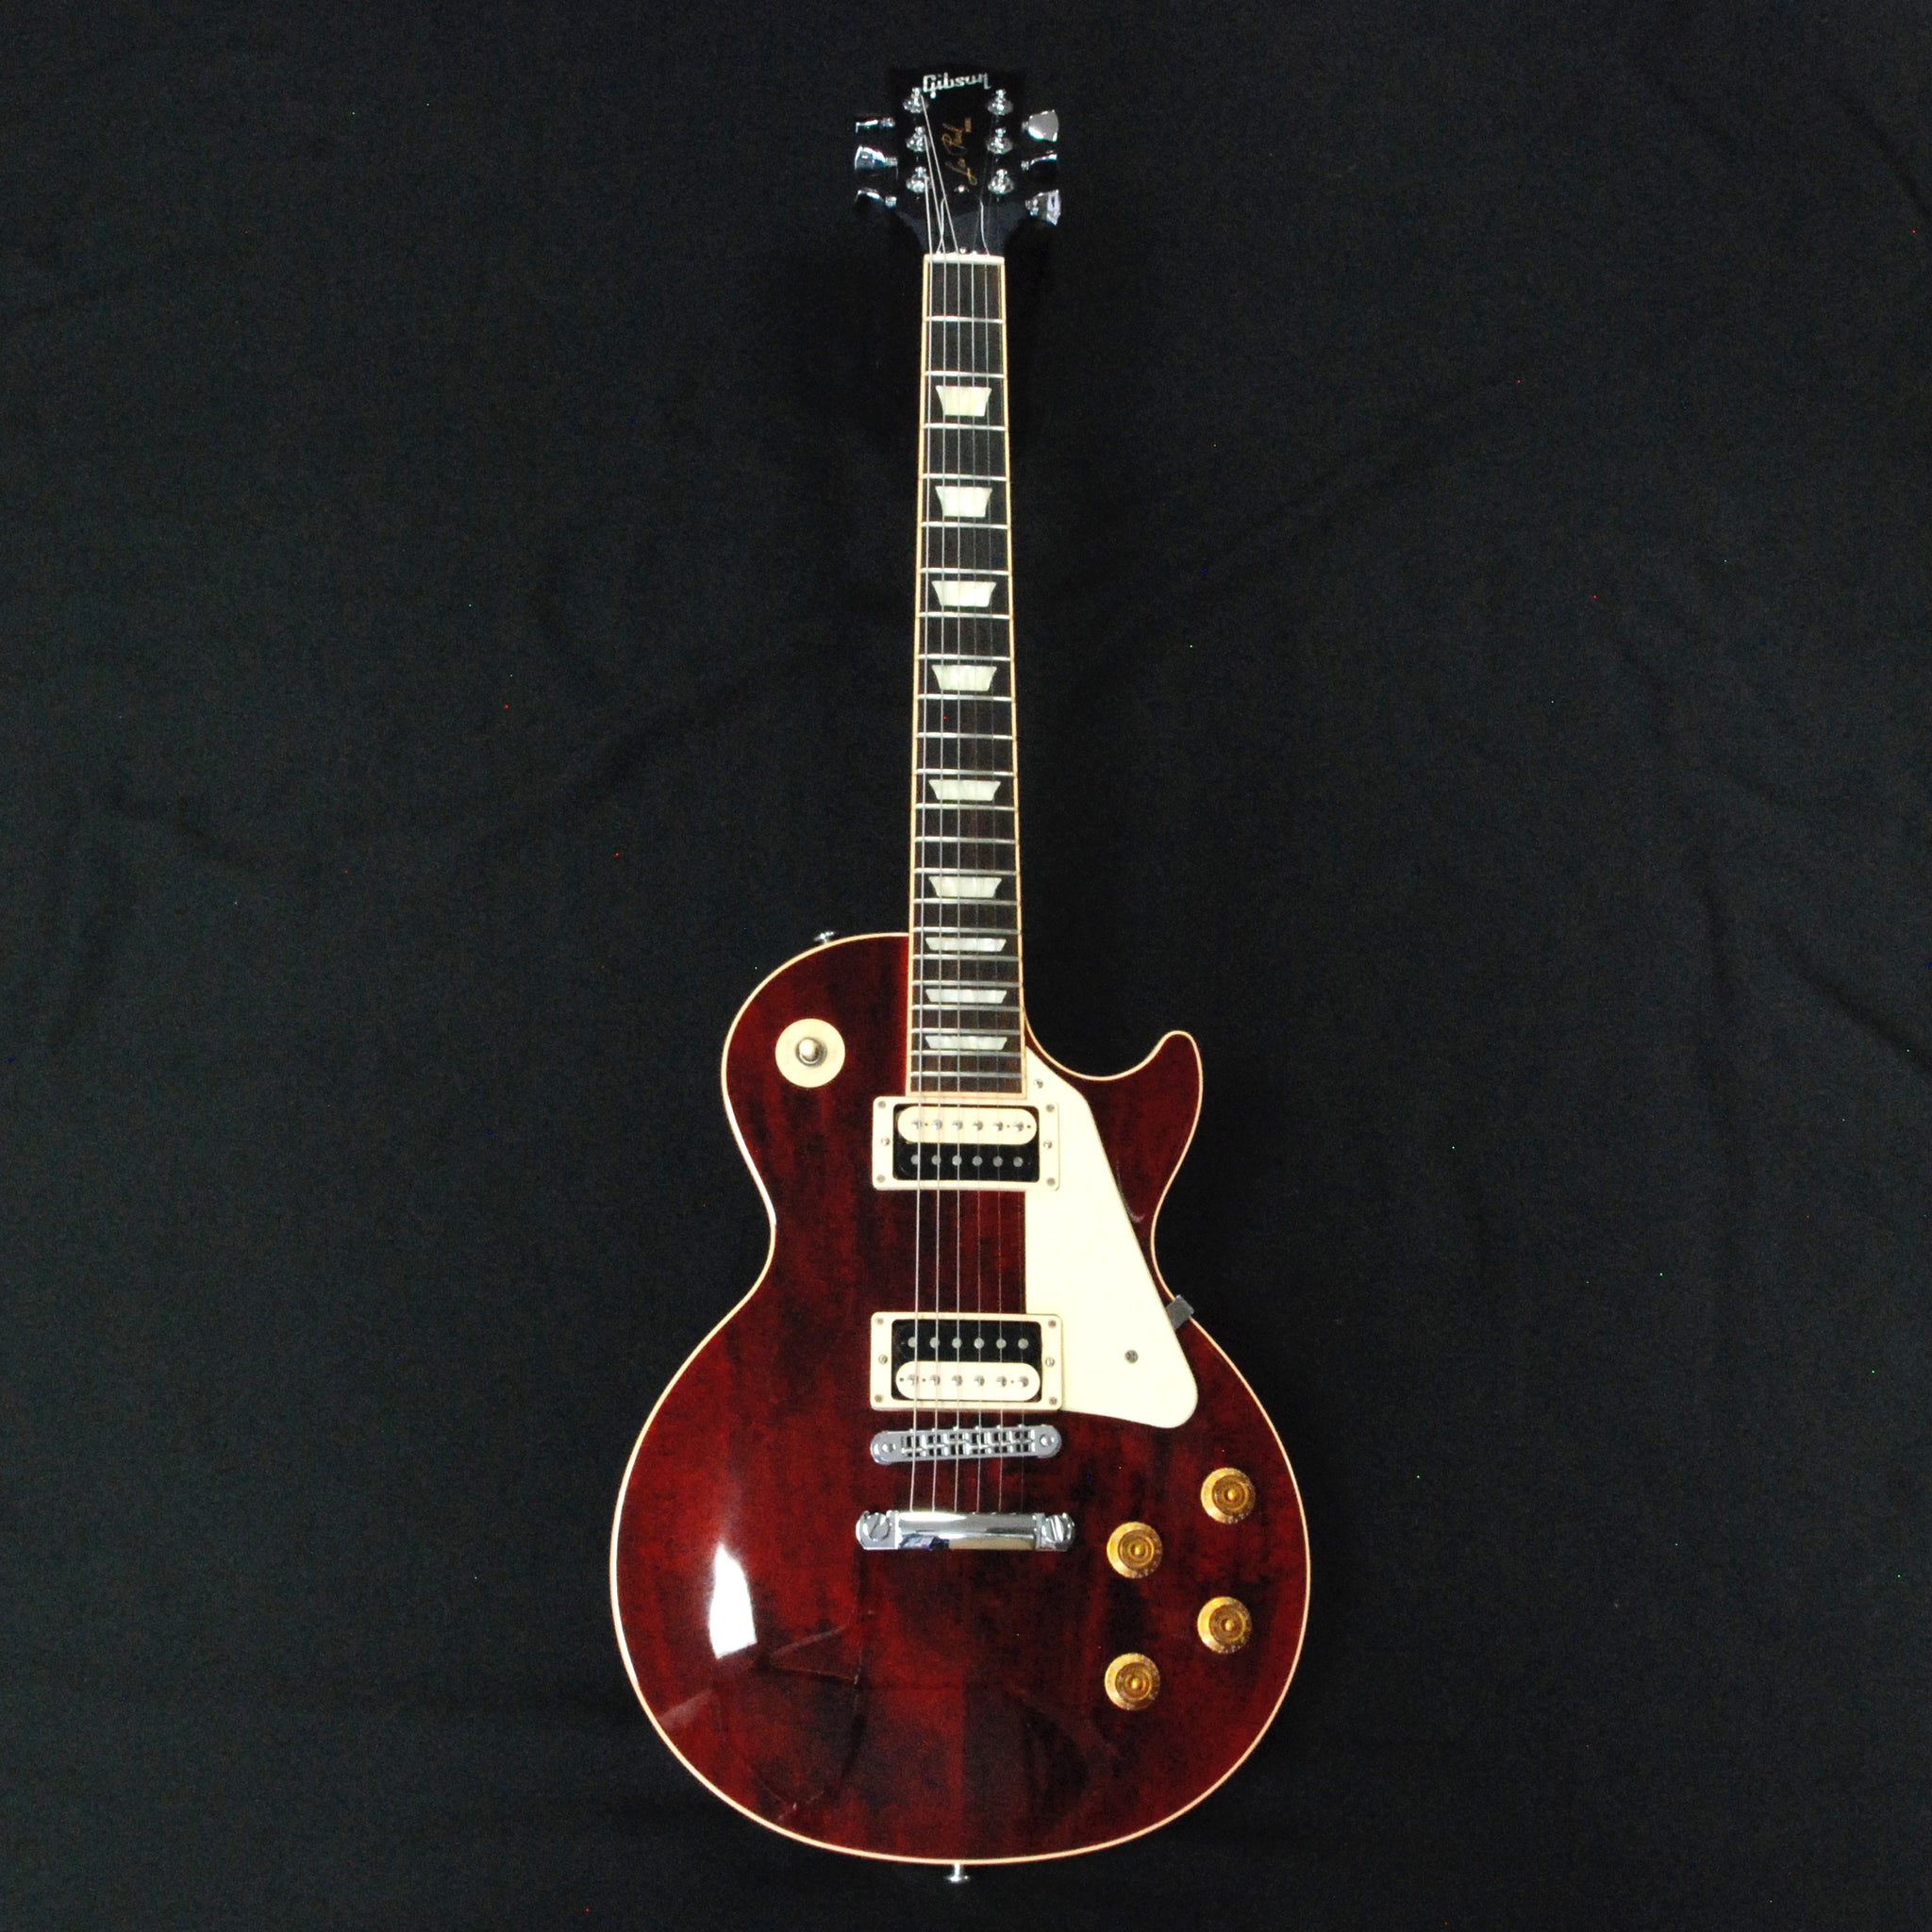 Shop online for Gibson 2015 Les Paul traditional Pro III Wine Red Excellent Condition today.  Now available for purchase from Midlothian Music of Orland Park, Illinois, USA